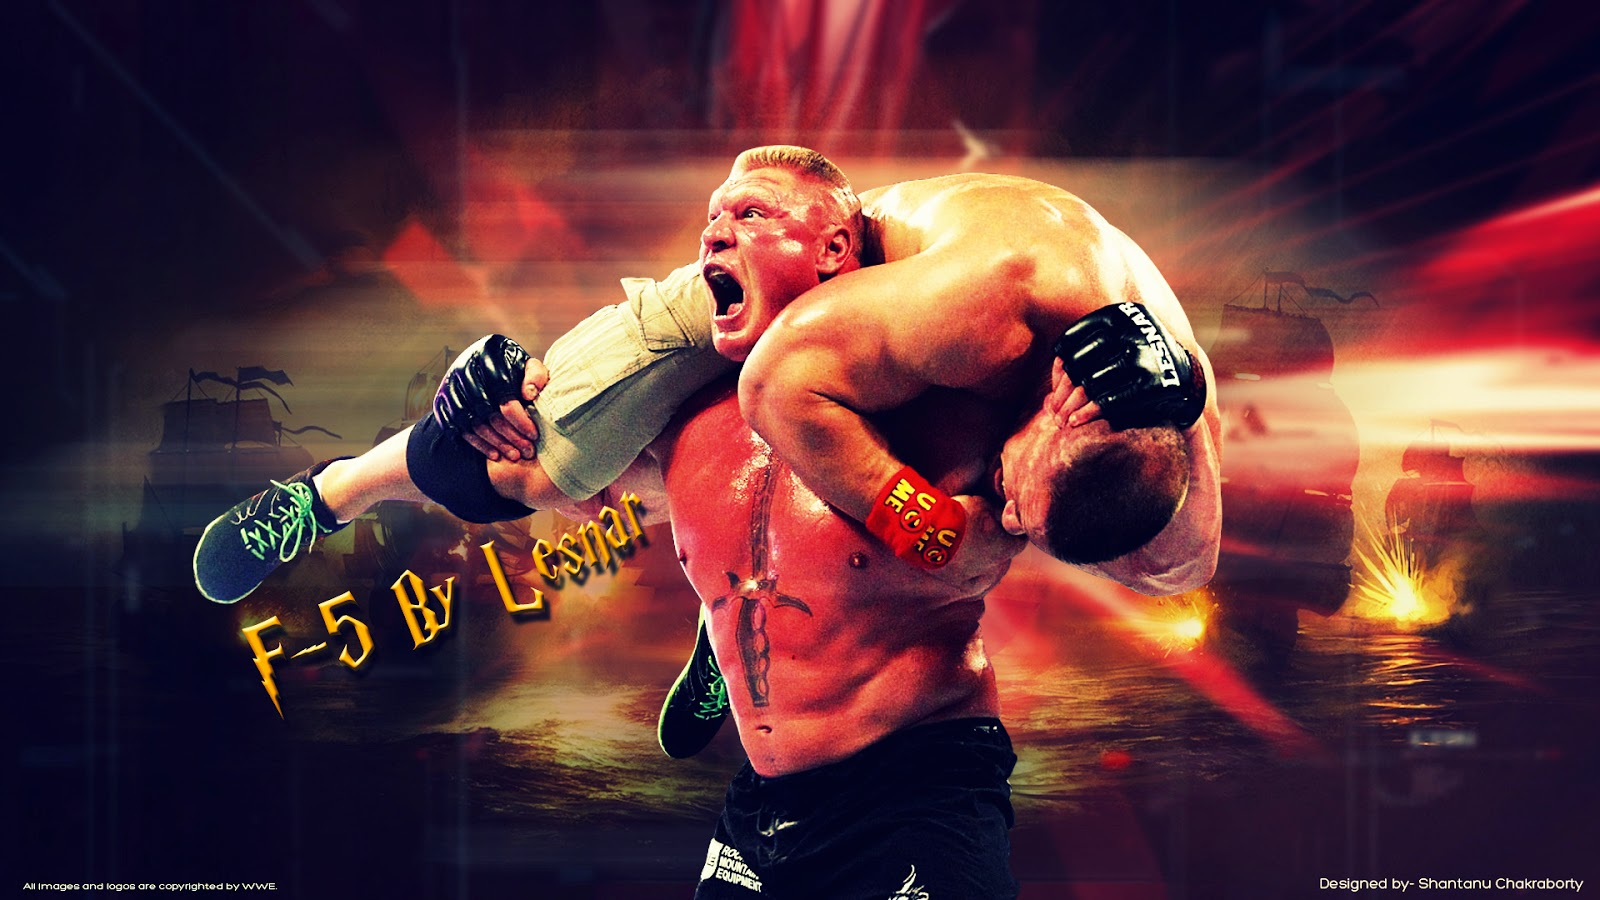 Free Download Wwe Brock Lesnar Wallpapers Hd Pictures Live Hd